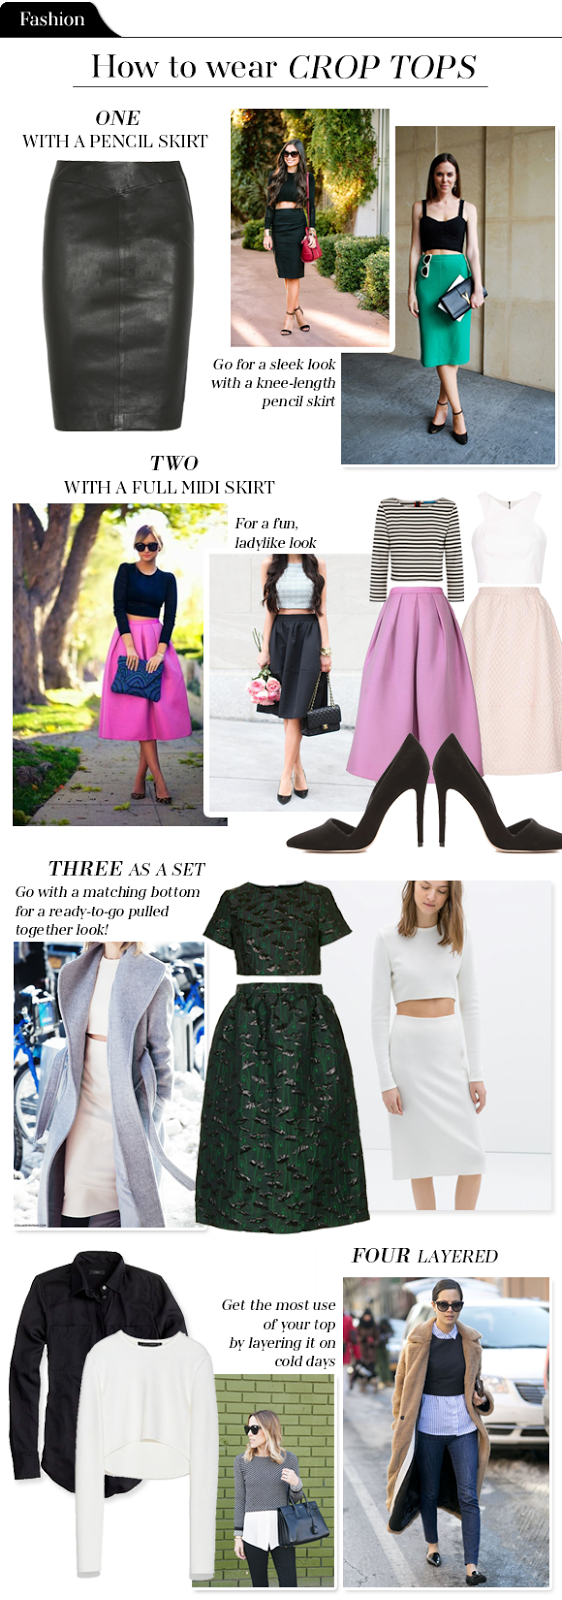 Fashion File: How to wear crop tops